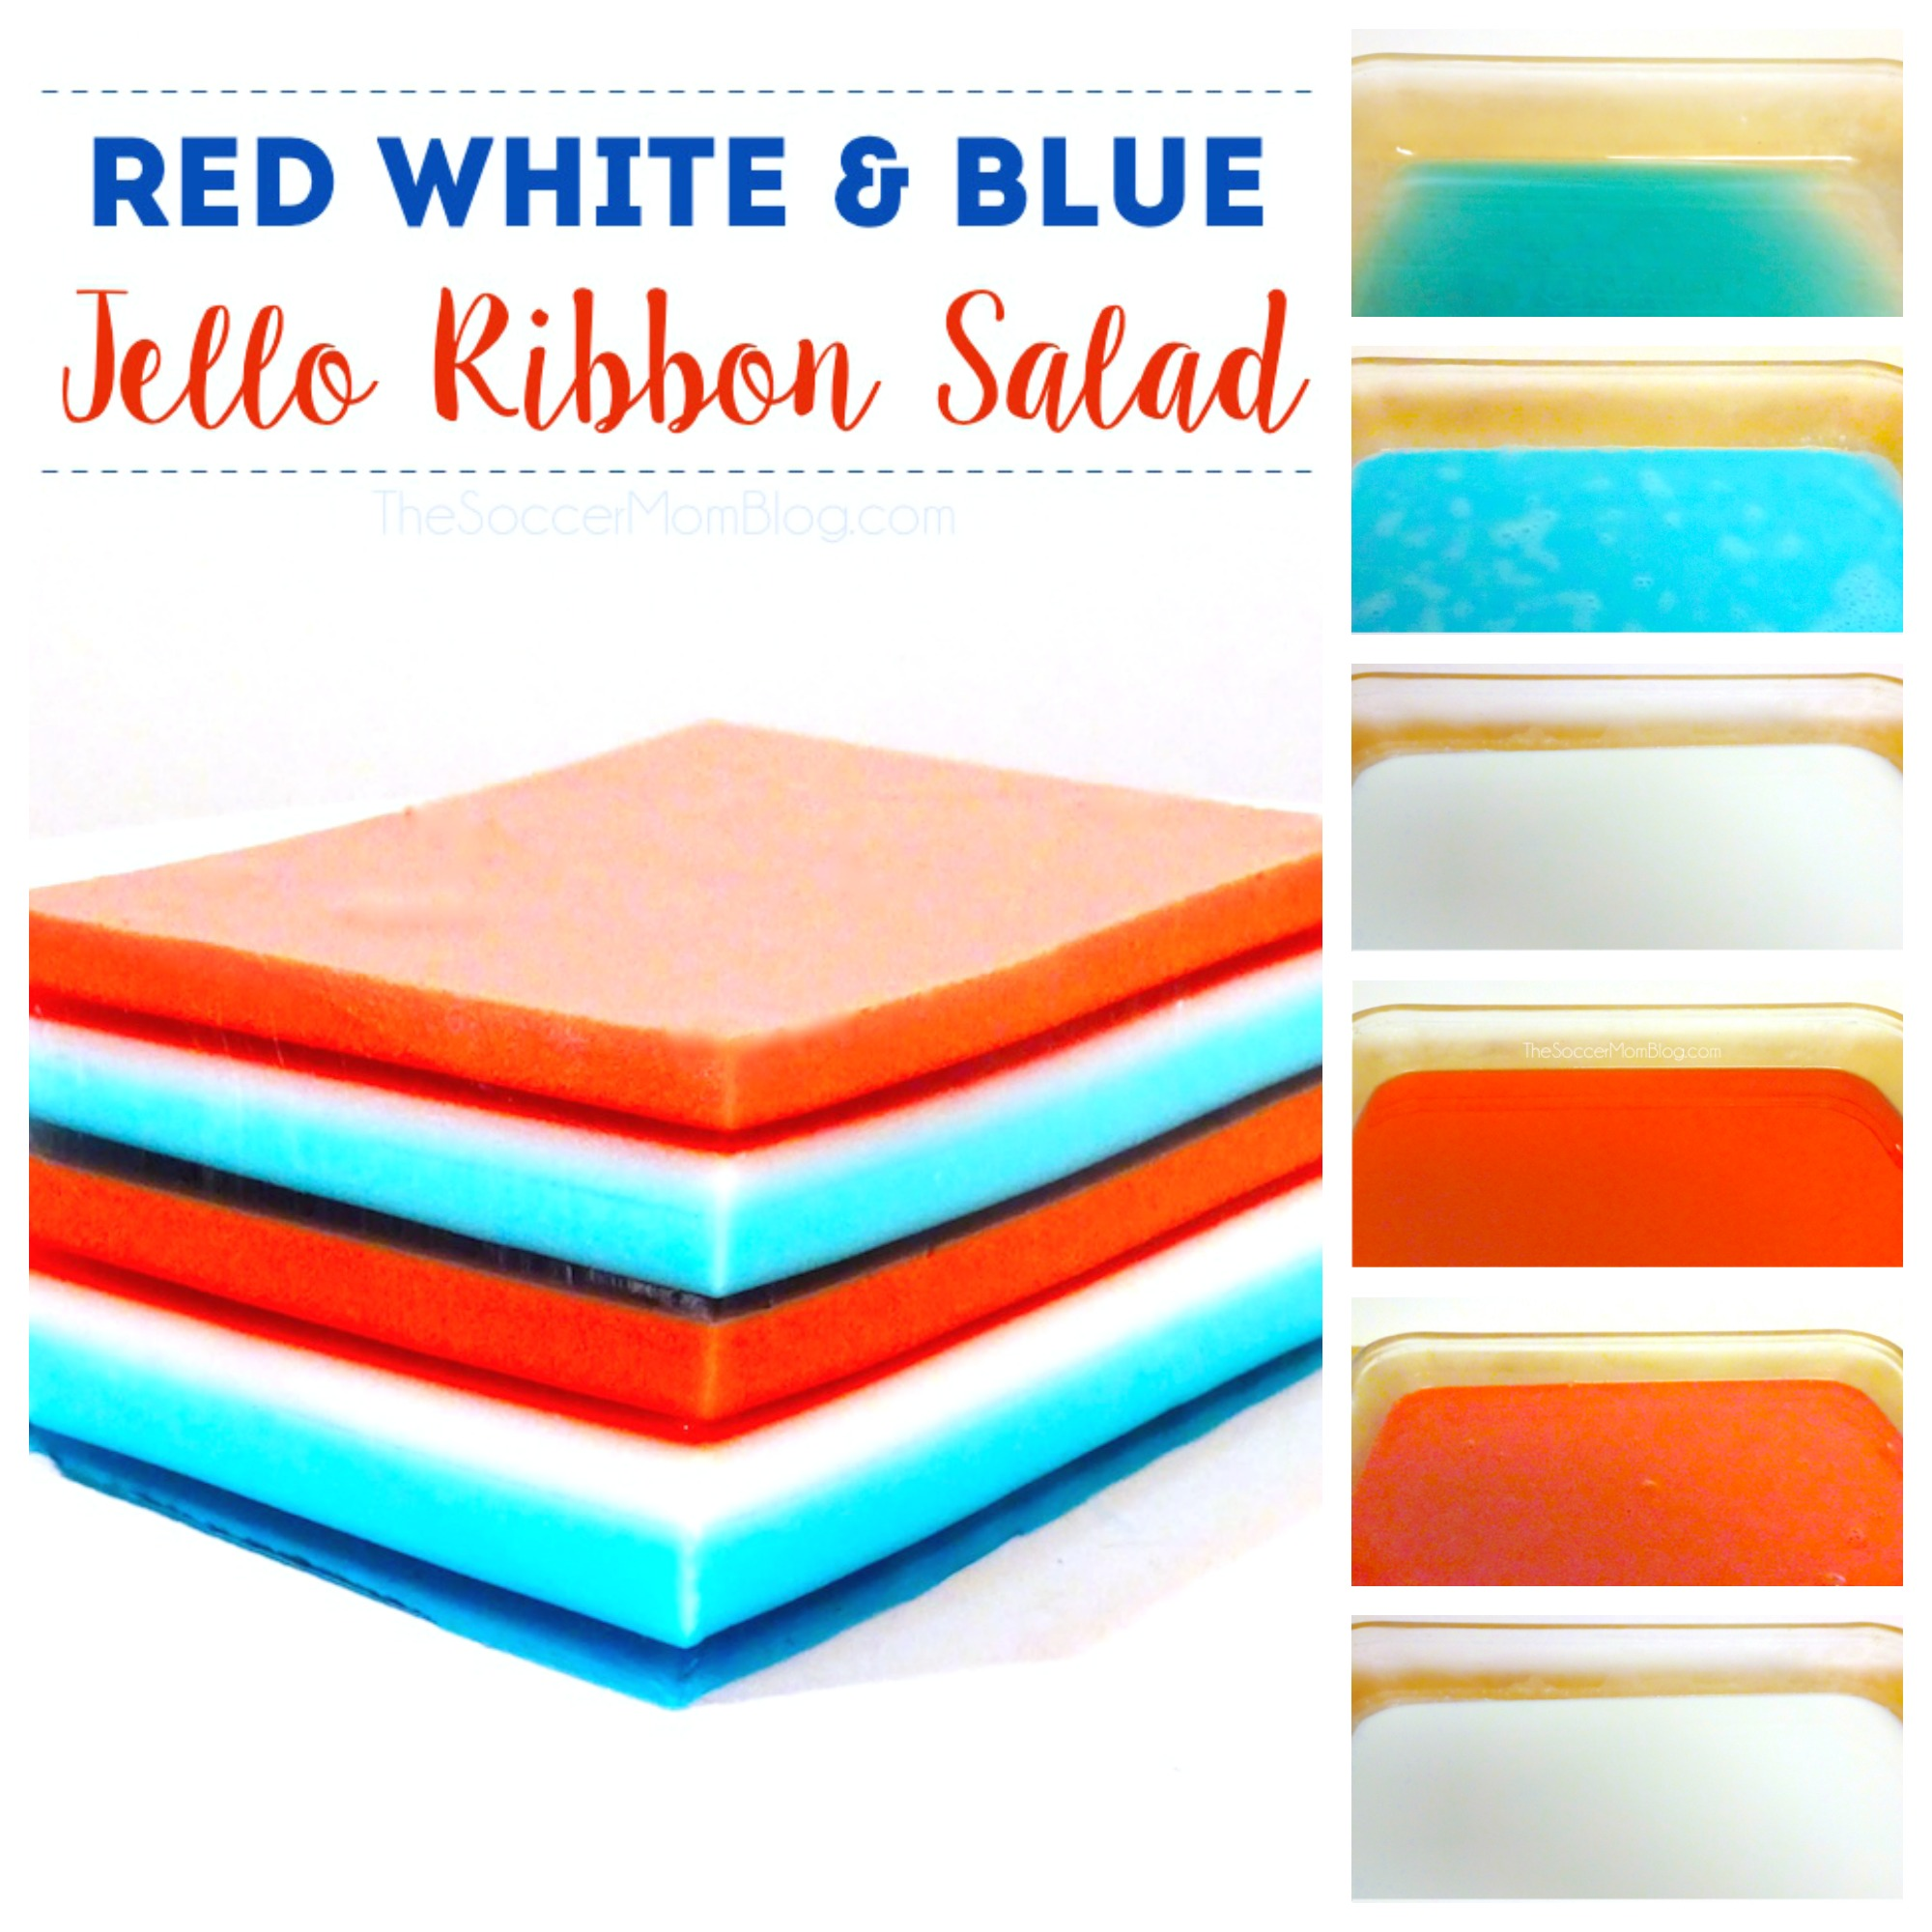 Jello-Ribbon-Salad-Square